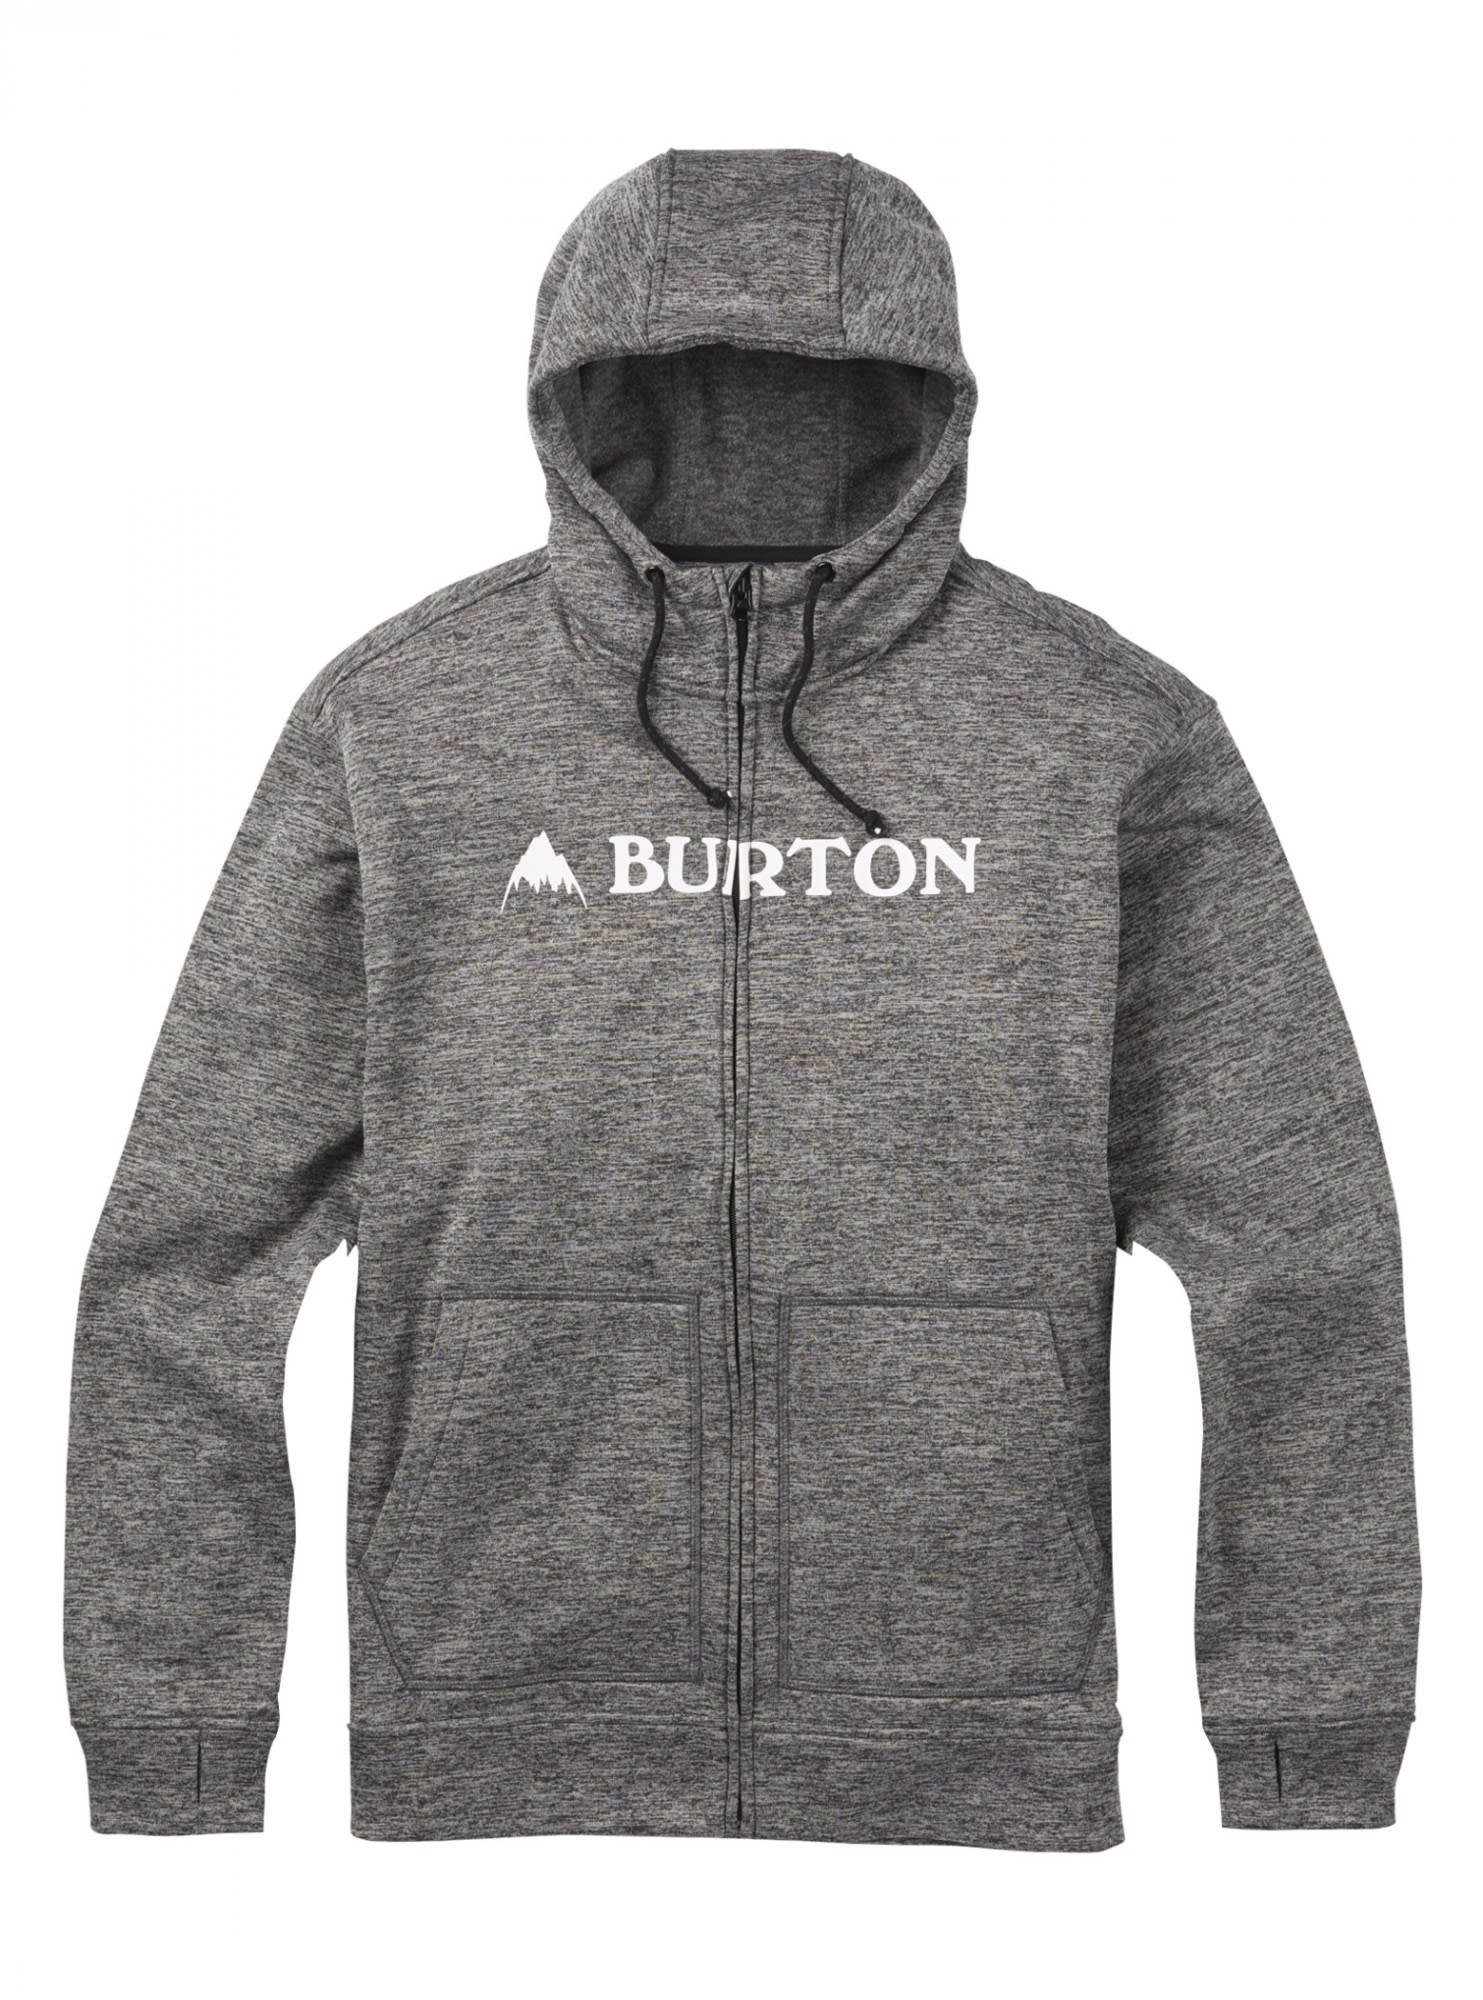 Burton MB OAK Full-Zip Hoodie (Modell Winter 2017) Grau, Male Freizeitpullover,